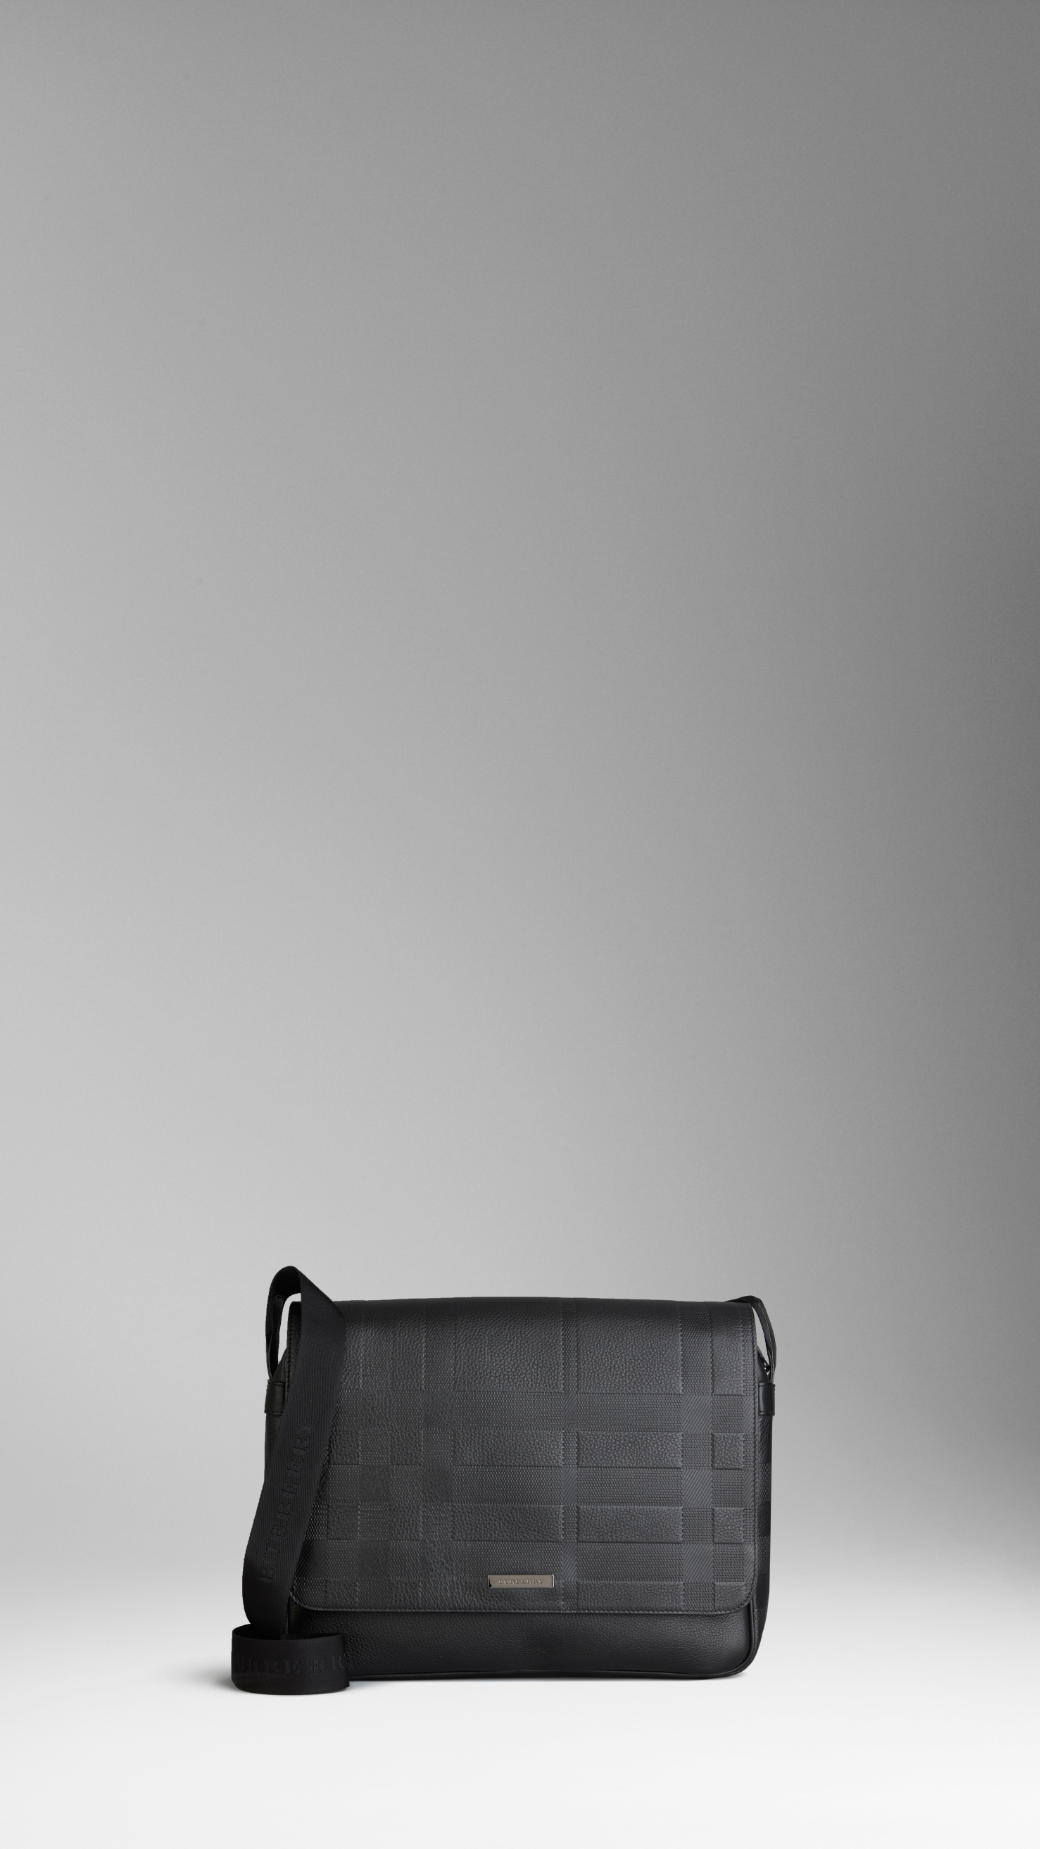 fd125c82dd Lyst - Burberry Large Embossed Check Leather Messenger Bag in Black ...